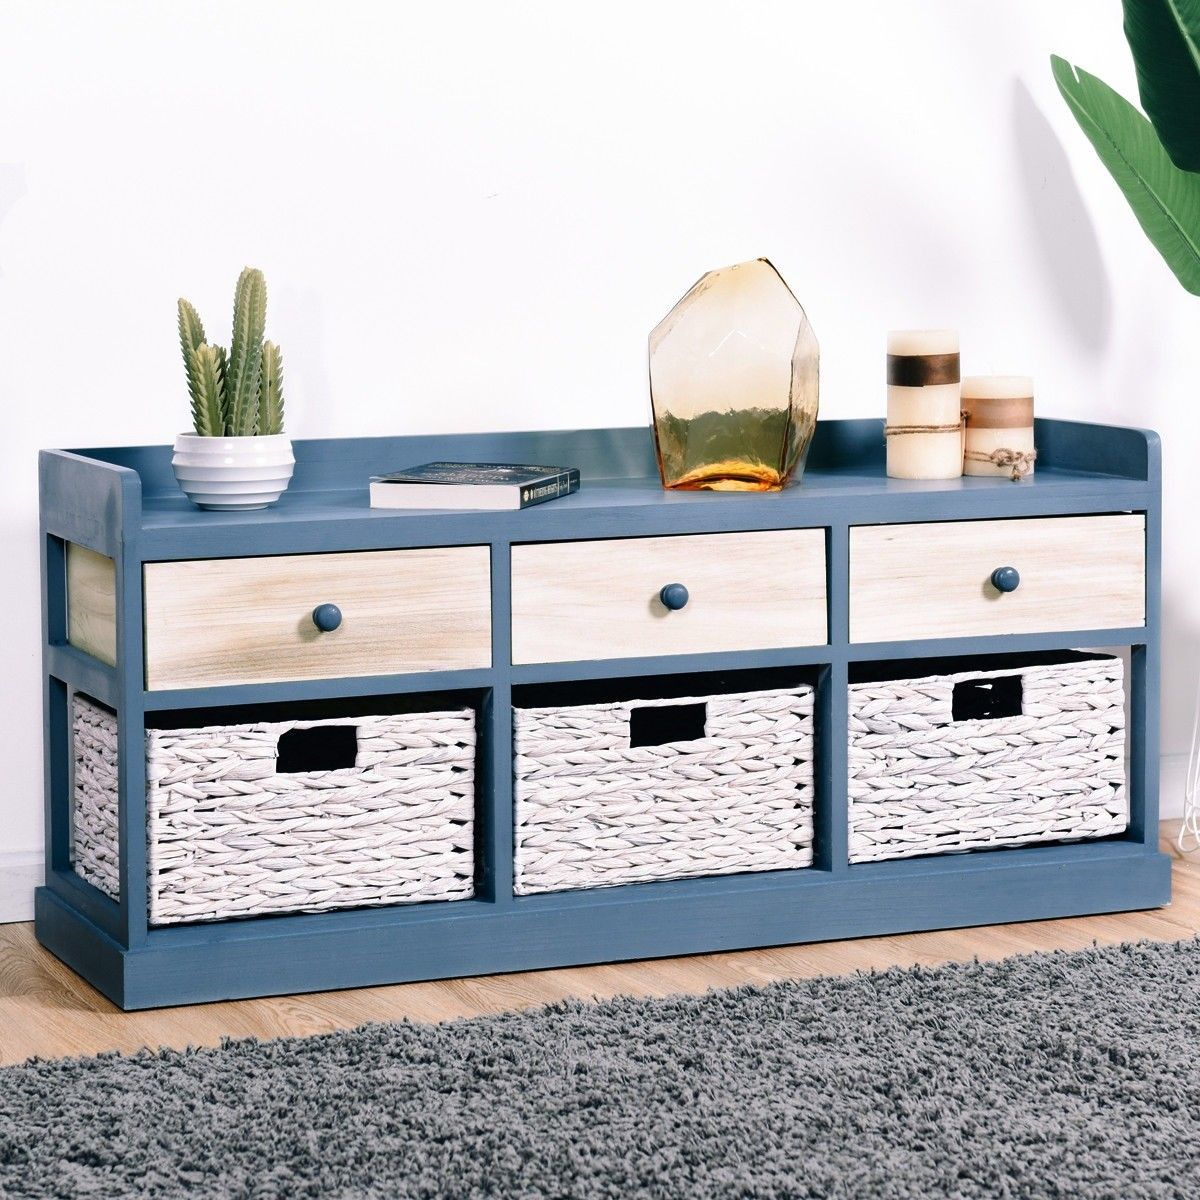 Side Table Chest Cabinet W 3 Wood Drawers And 3 Baskets Wood